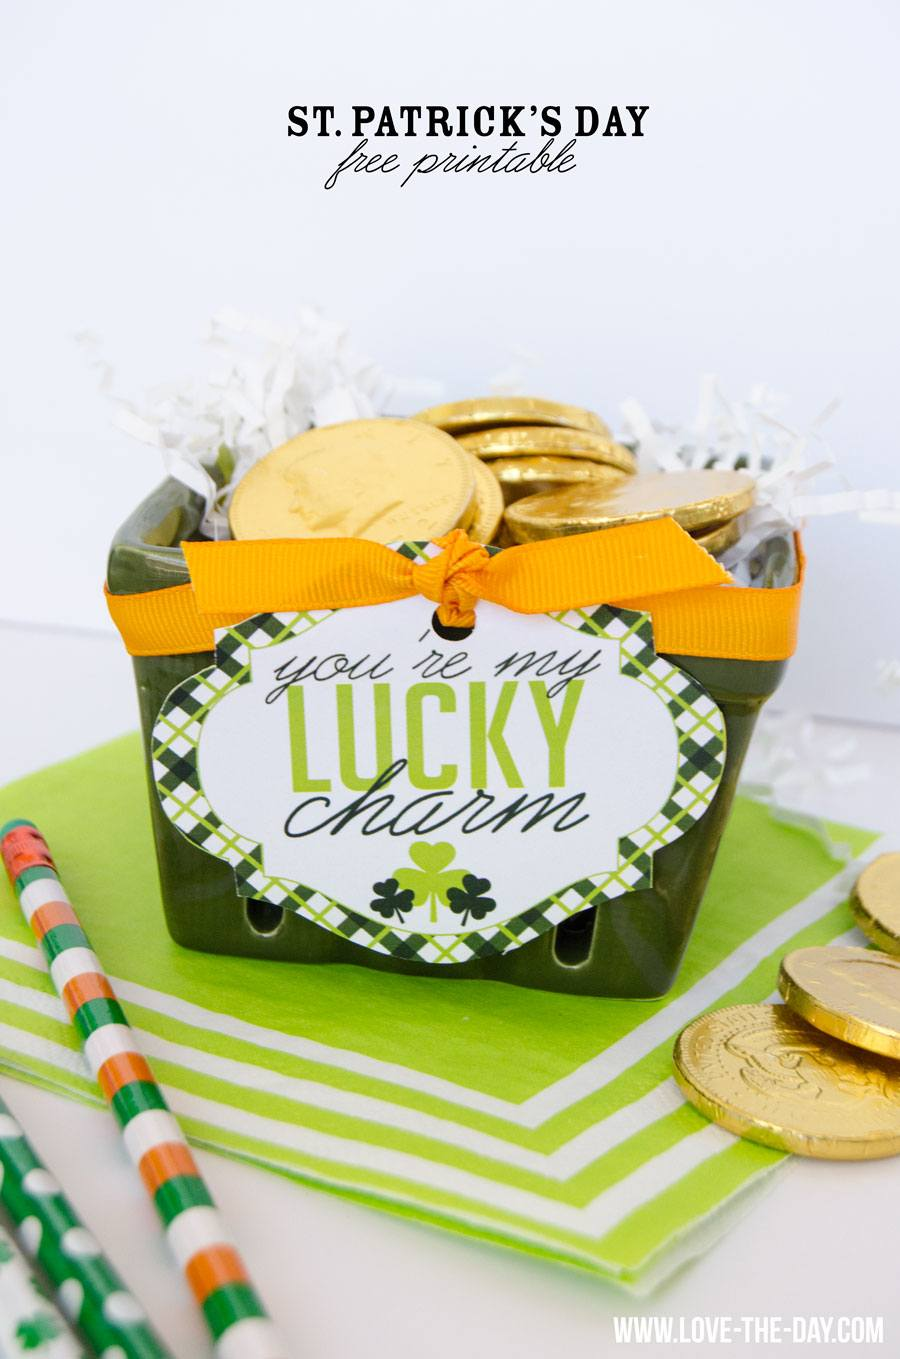 St. Patrick's Day Ideas & FREE Printable by Lindi Haws of Love The Day